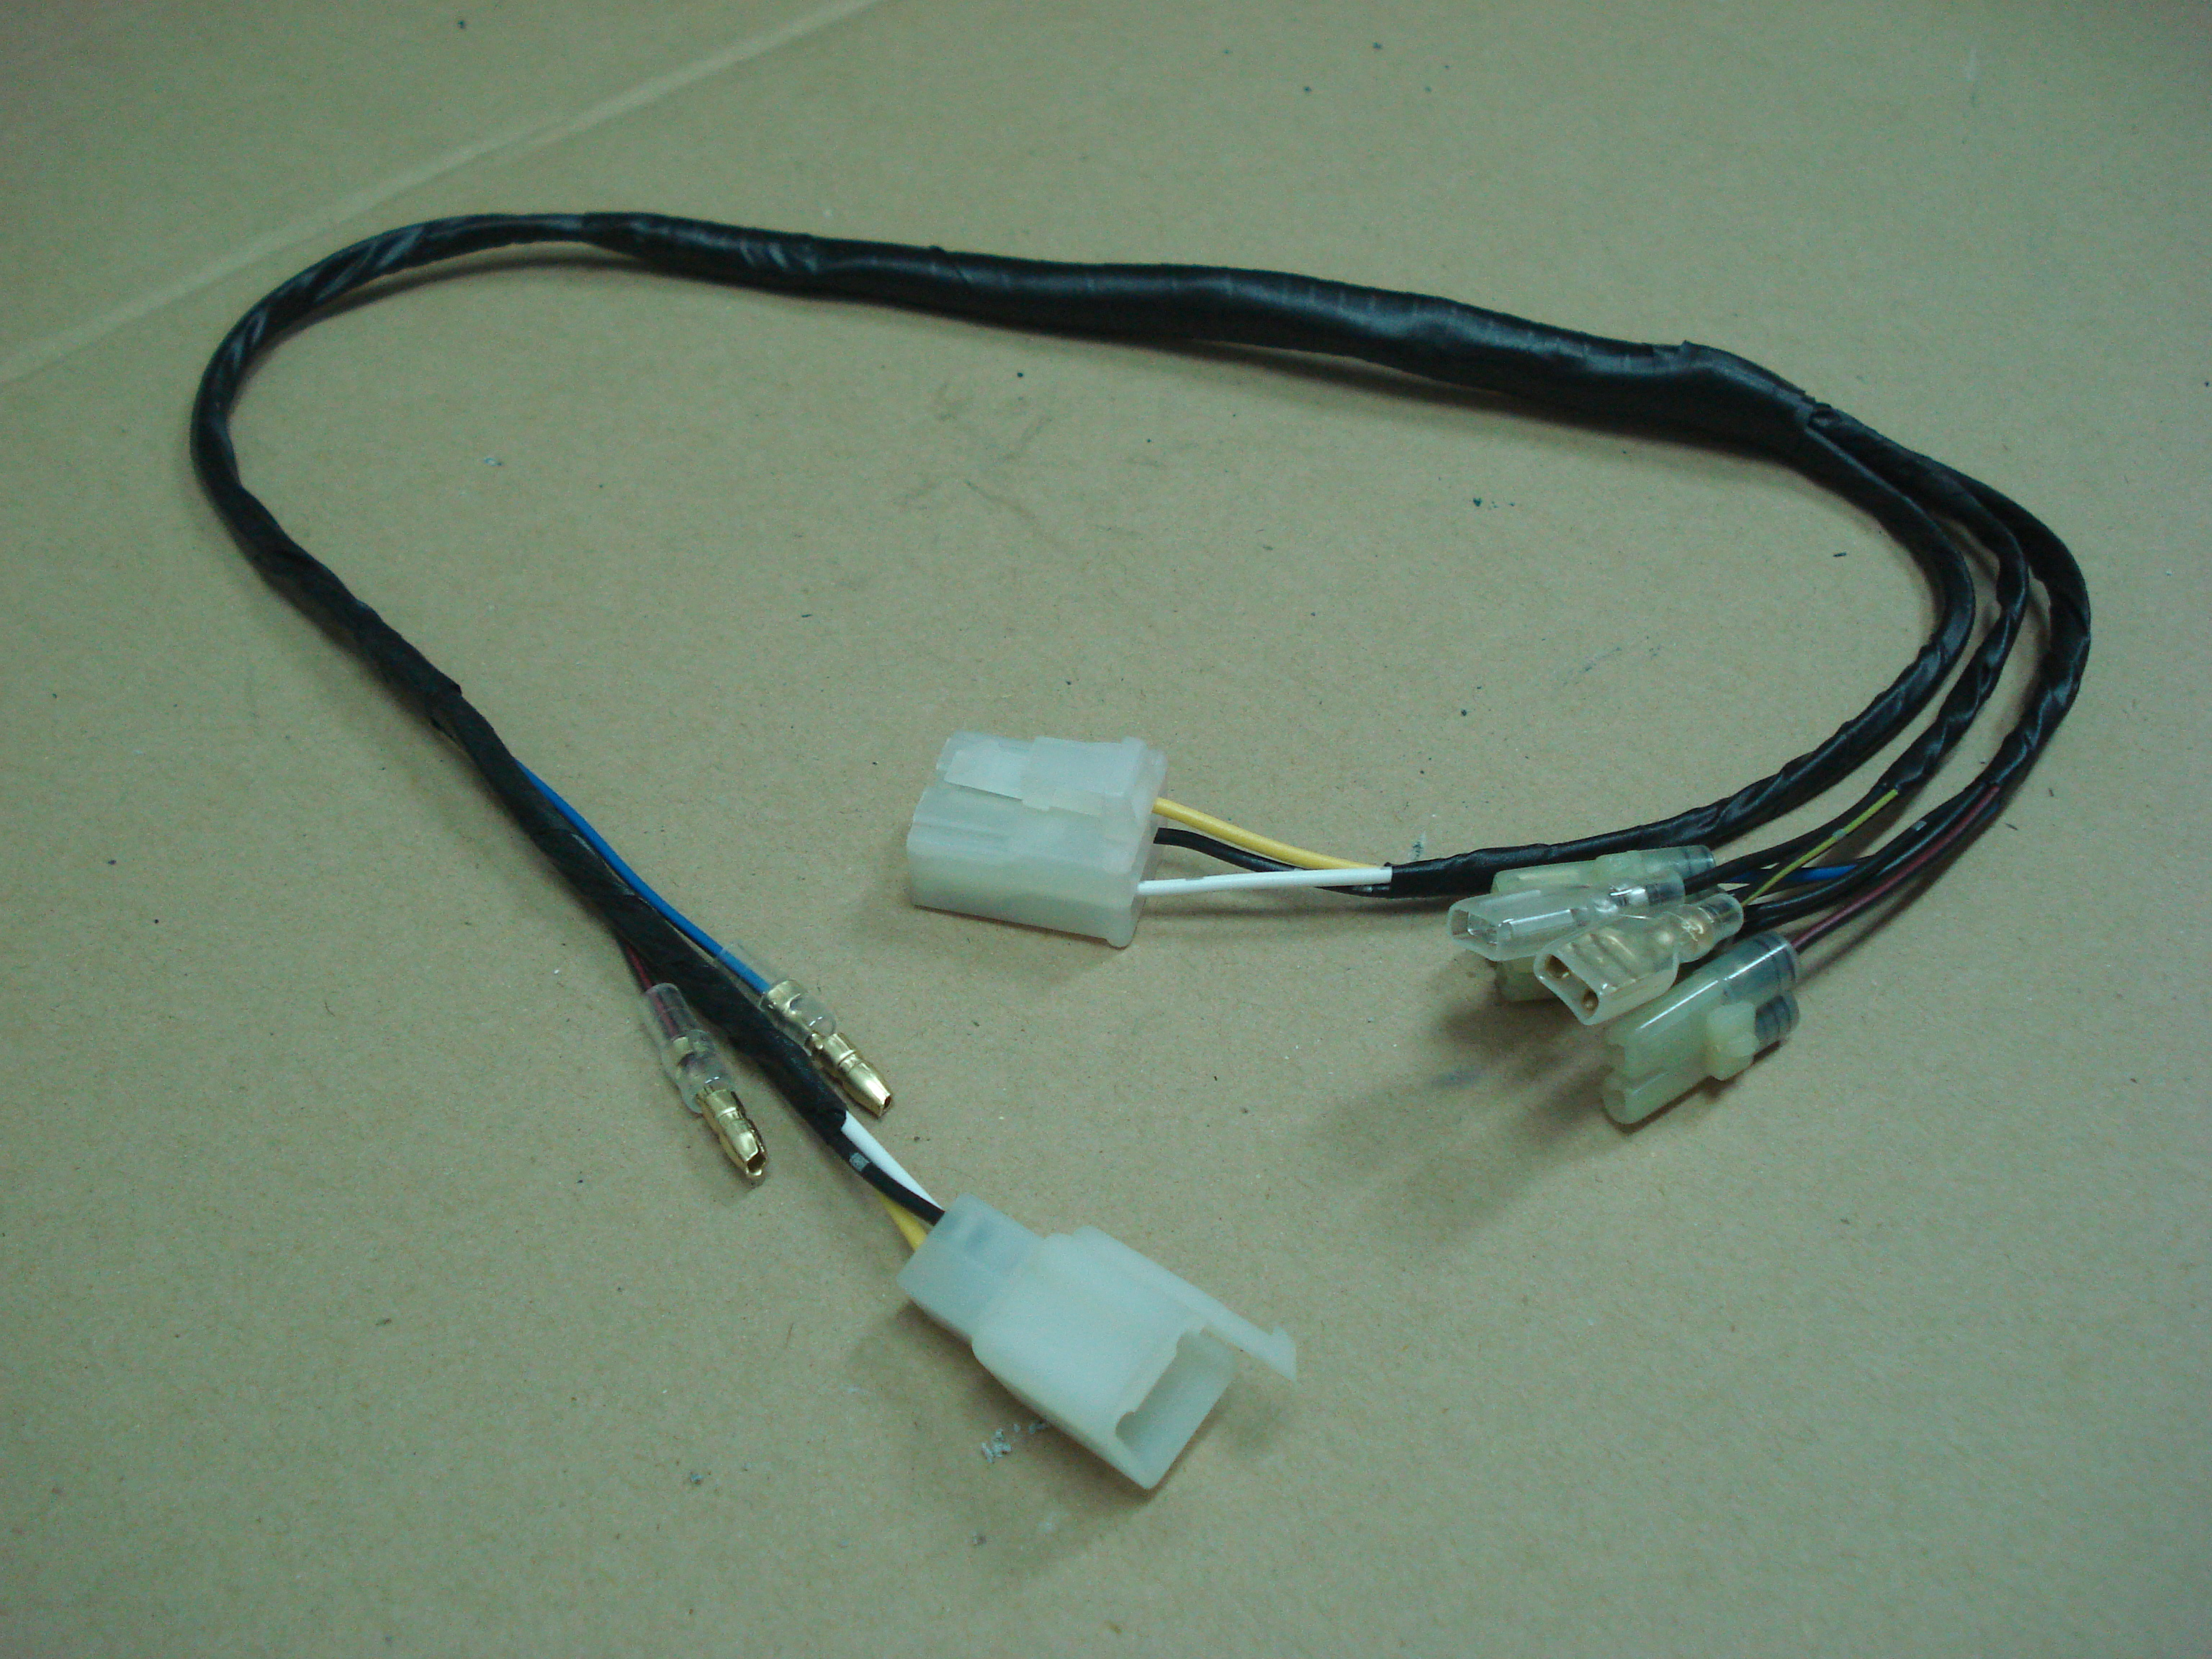 simple wiring harness for whizzer wc1 and earlier ne5 motorbikes 171 wc1manufacturer s